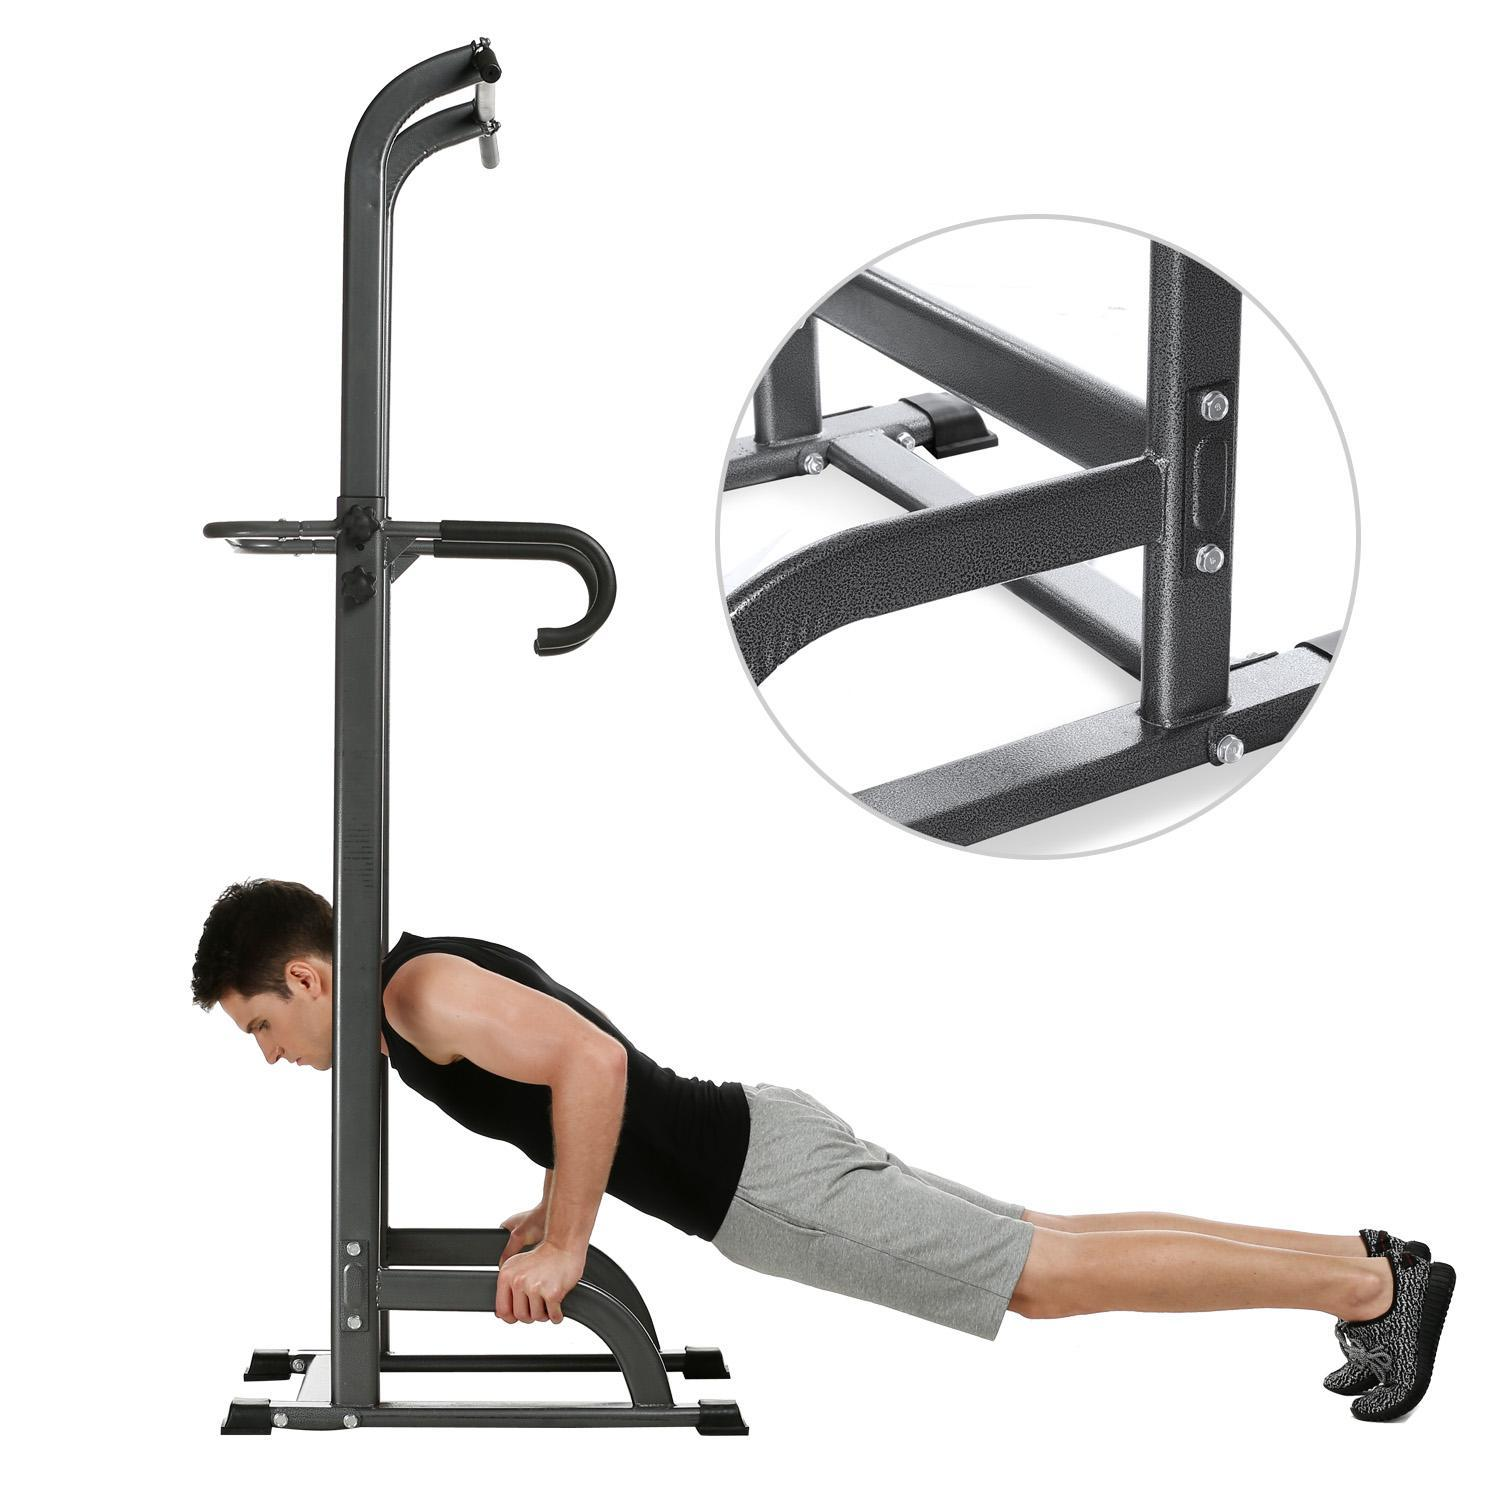 Exceptionnel Power Tower With Push Up, Pull Up, Dip Stations, Knee Raise , Full